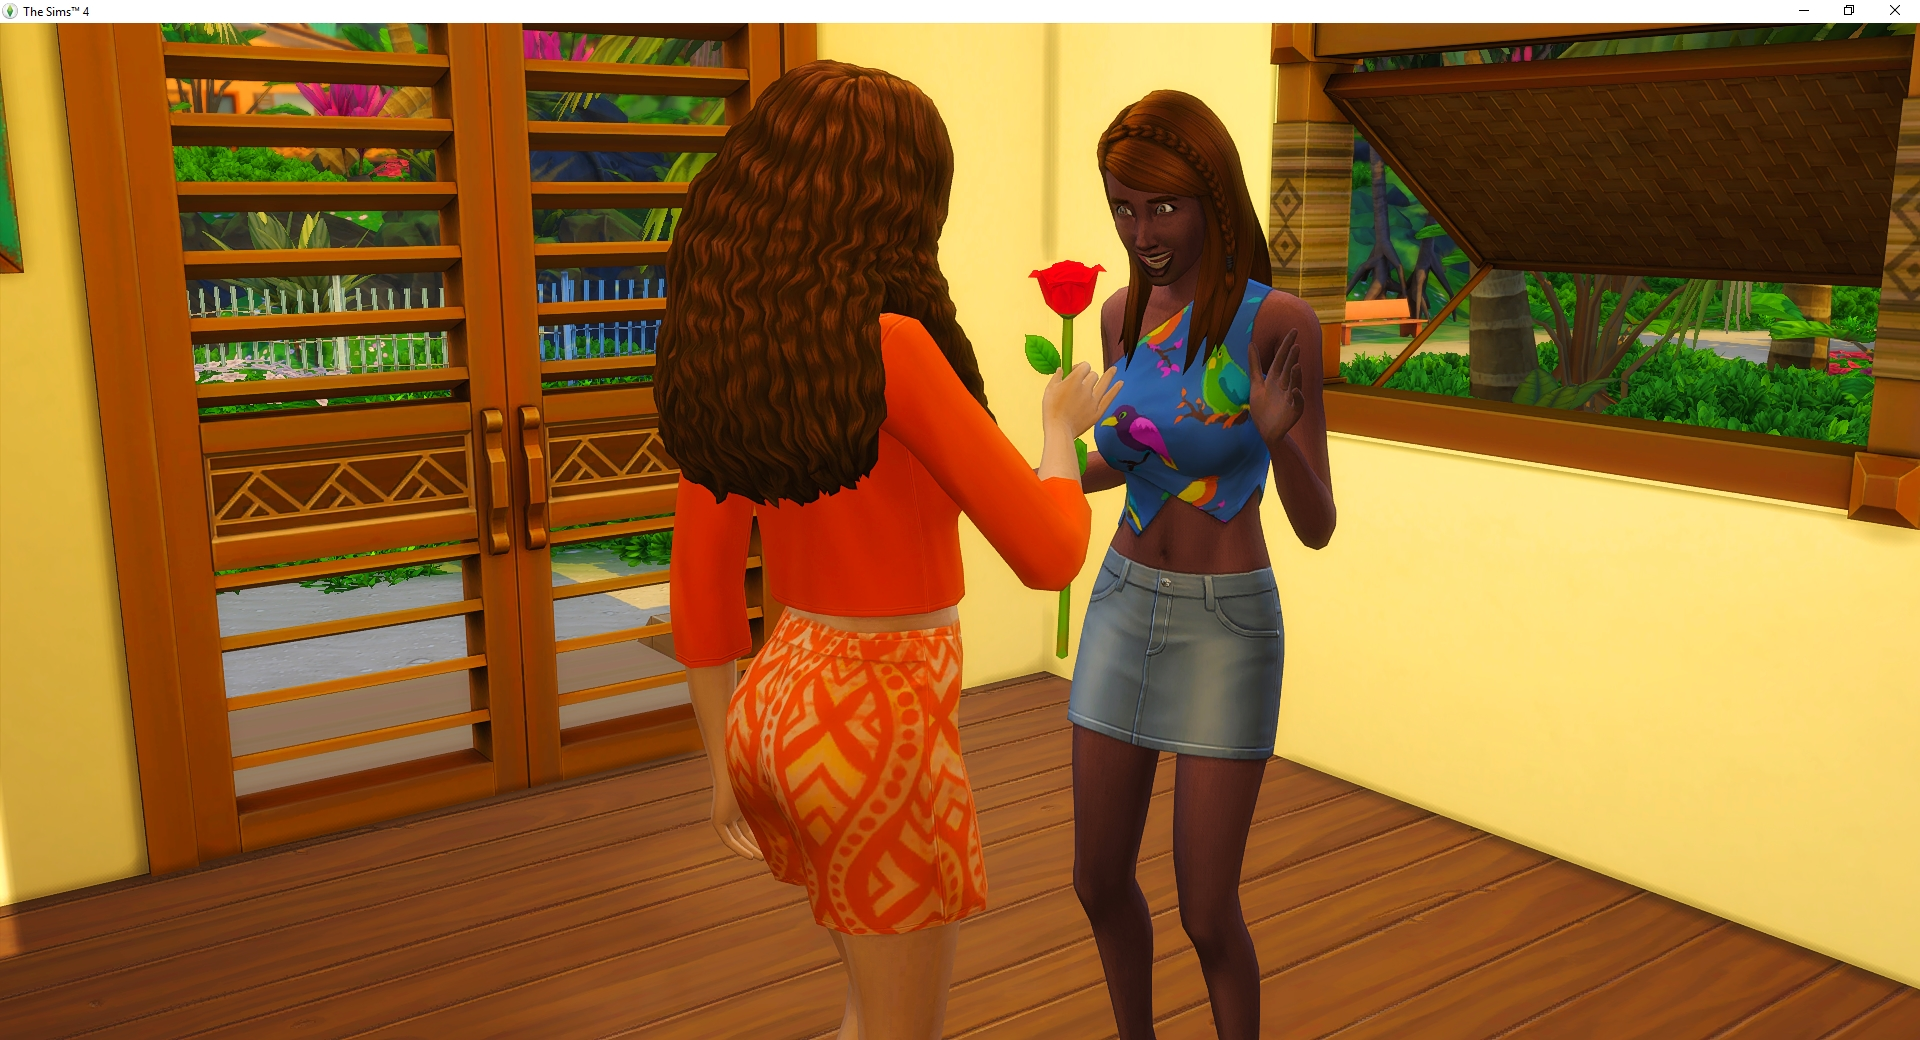 2019-06-27 17_53_31-The Sims™ 4